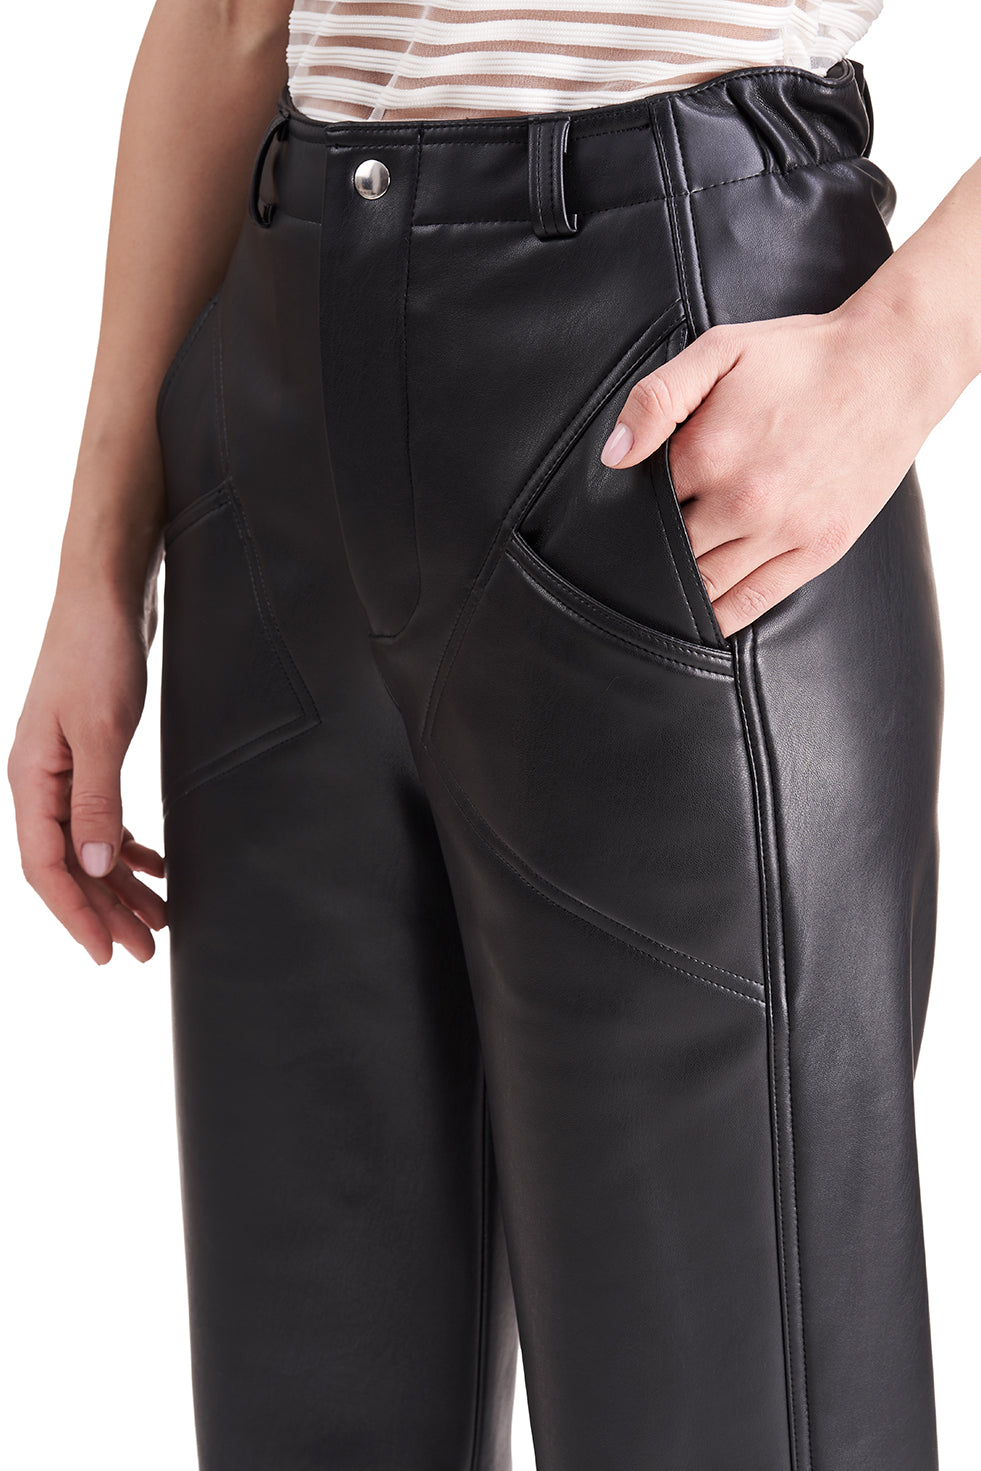 Toby Black Leather Trousers